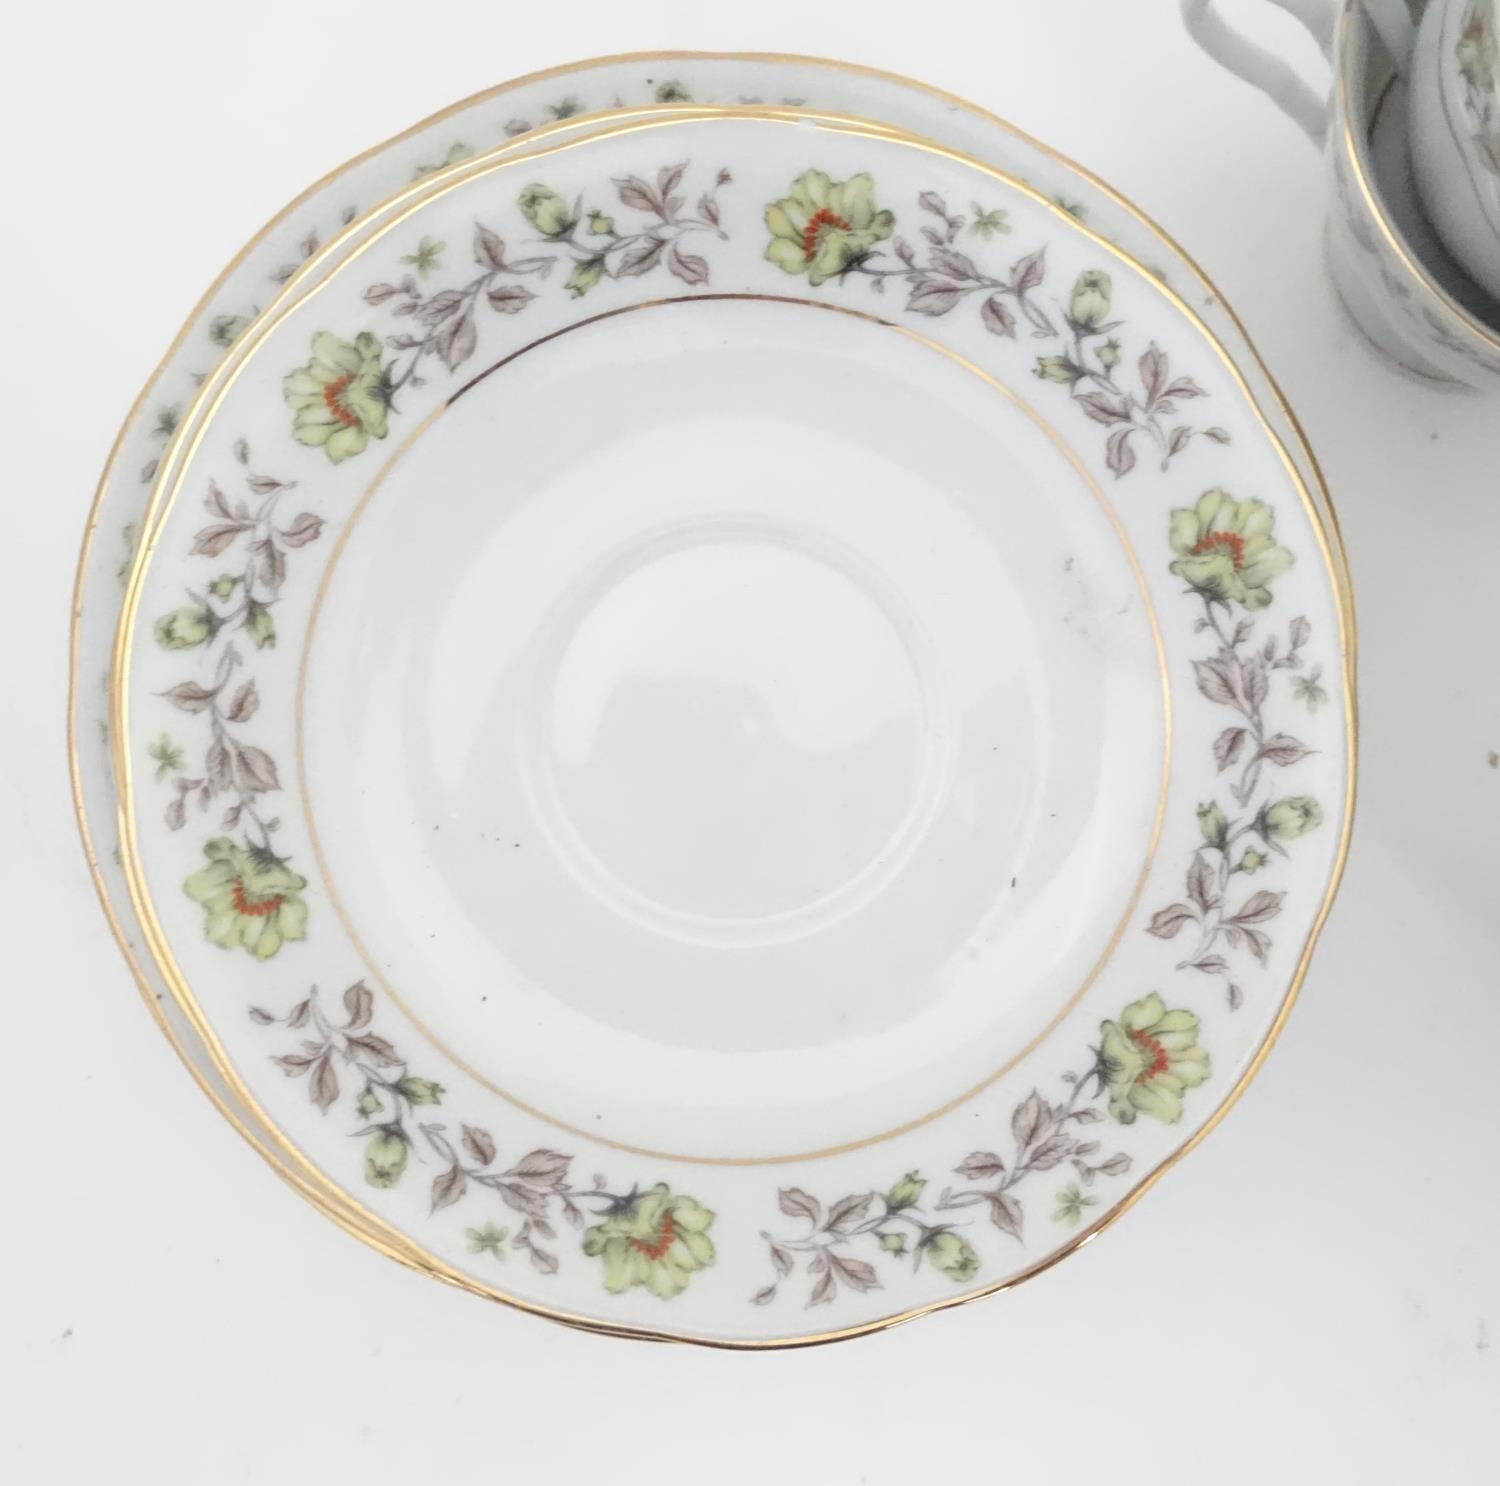 A quantity of assorted ceramics and glass to Colclough cups and saucer, Royal Brierley crystal - Image 9 of 15